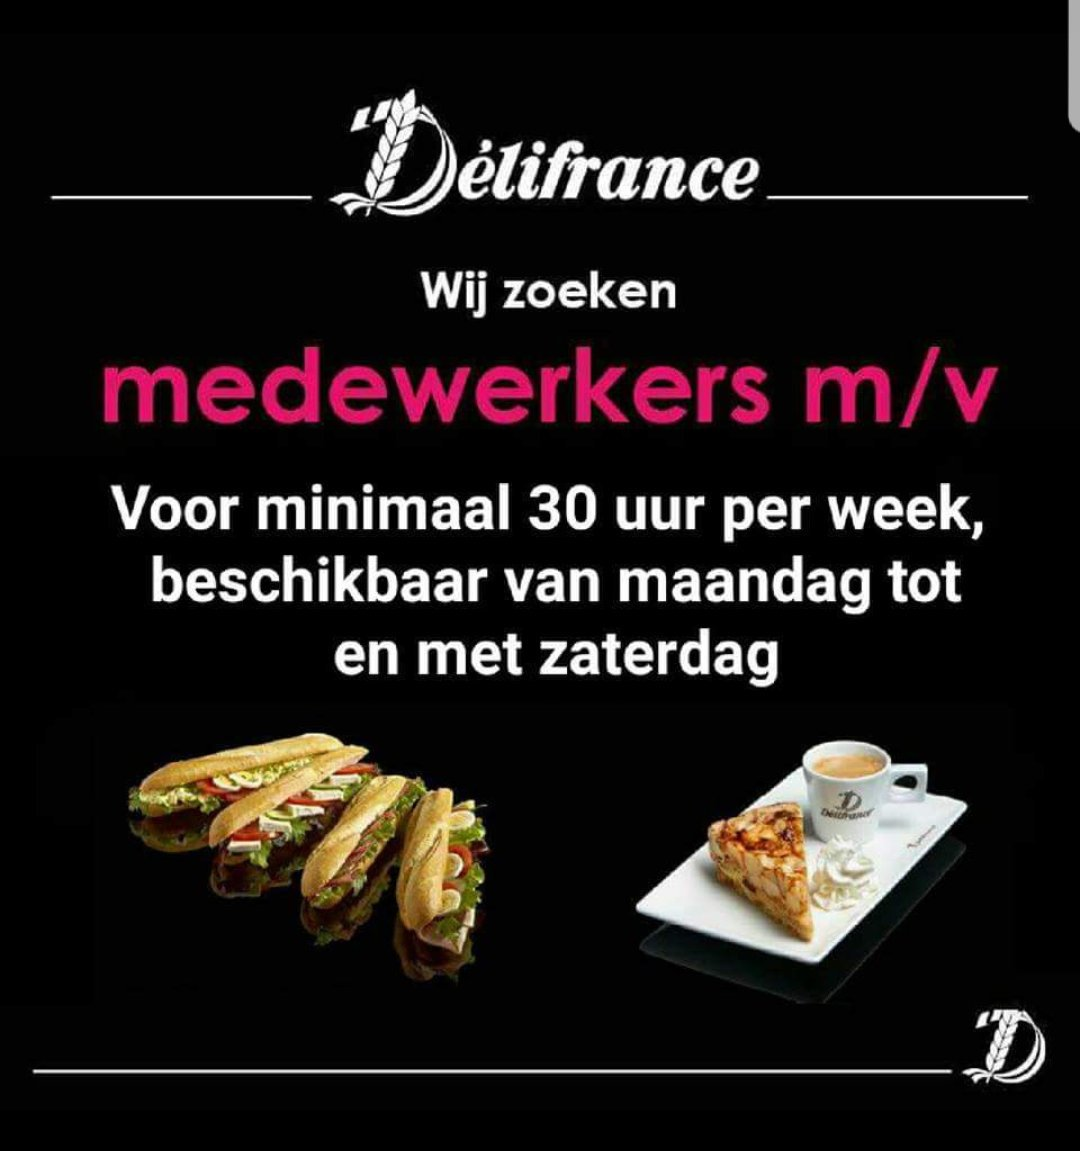 Delifrance Houten At Ophetrond Twitter